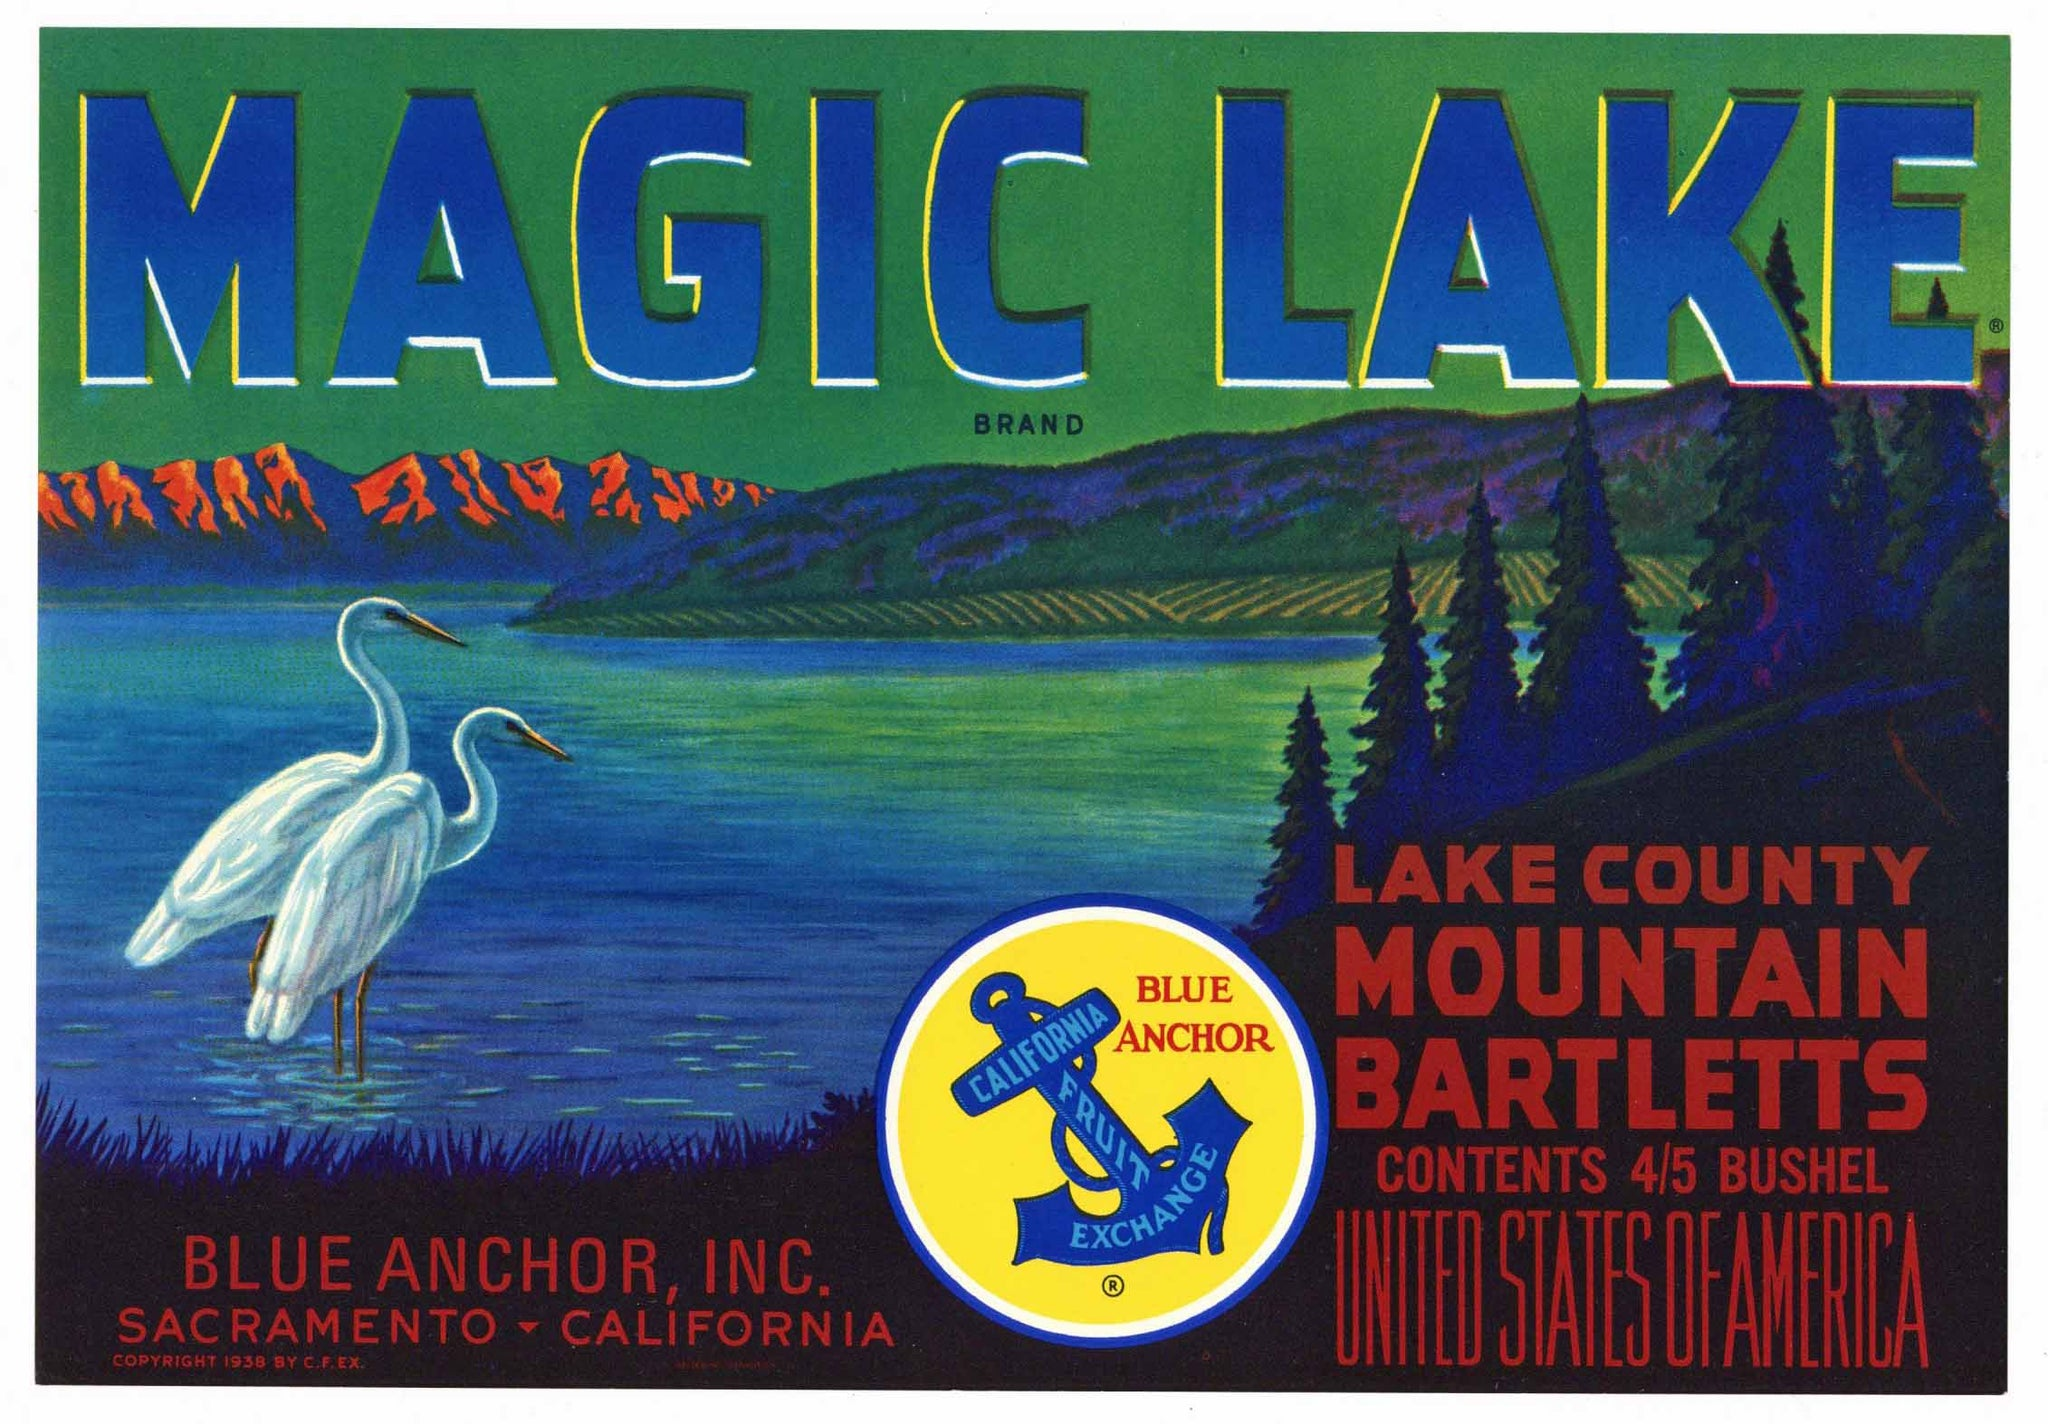 Magic Lake Brand Vintage Lake County California Pear Crate Label